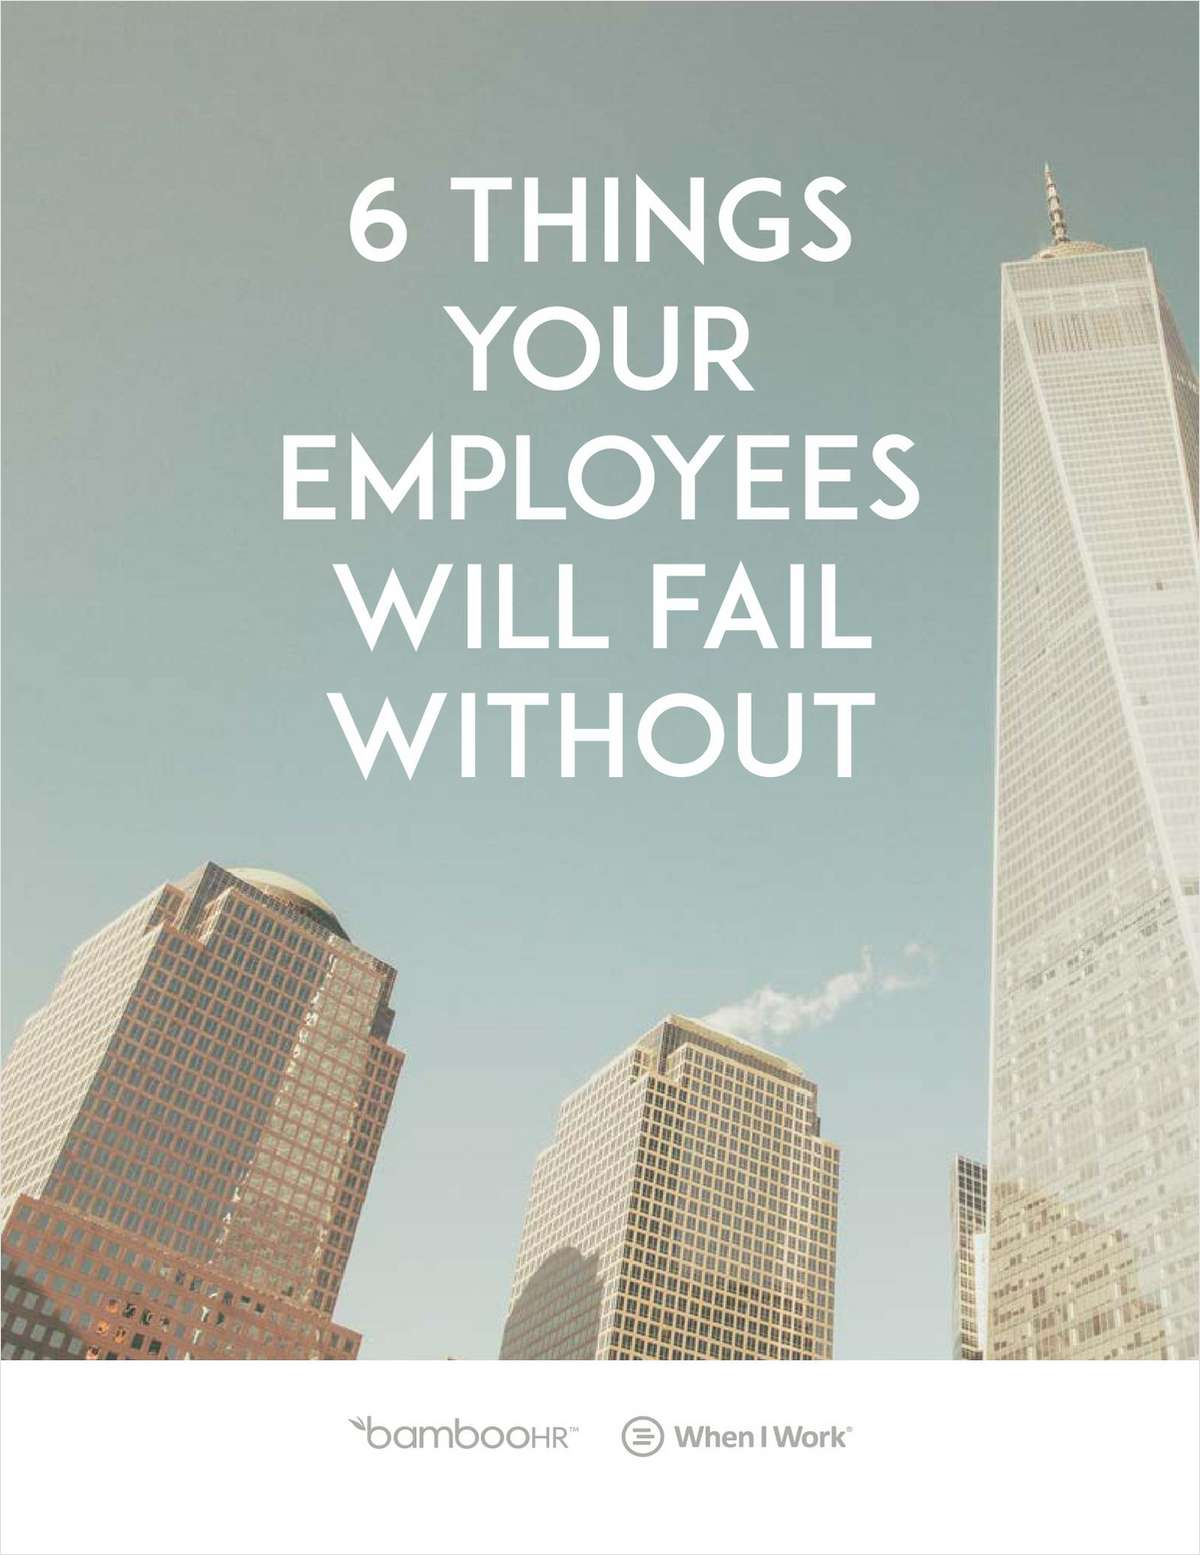 6 Things Your Employees Will Fail Without